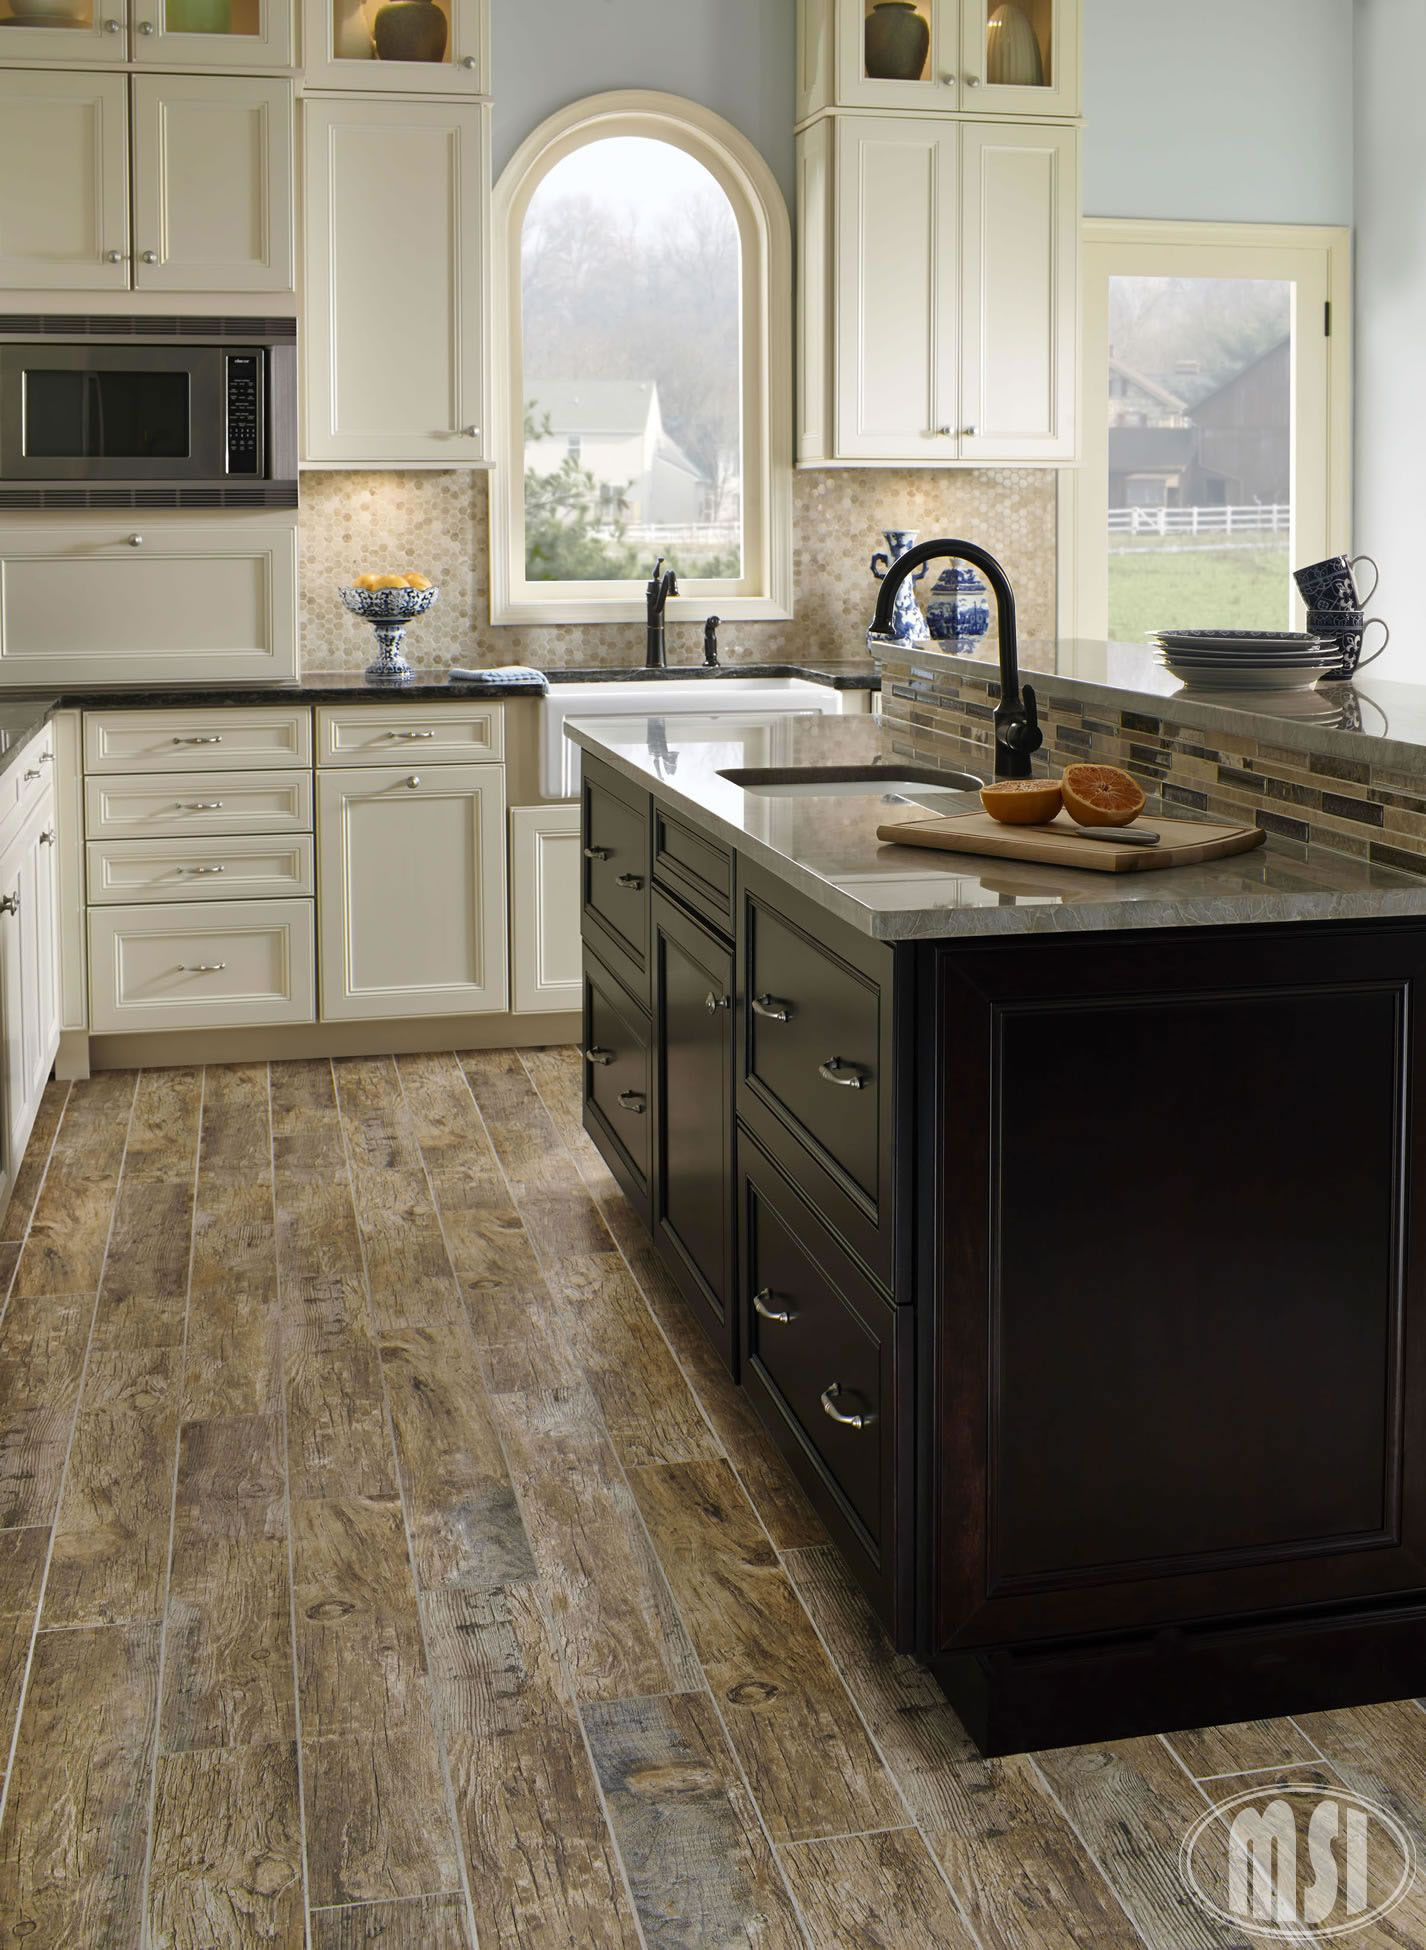 Kitchen Floor Wood Perfect Kitchen Floor No Need To Worry About Real Wood Floors